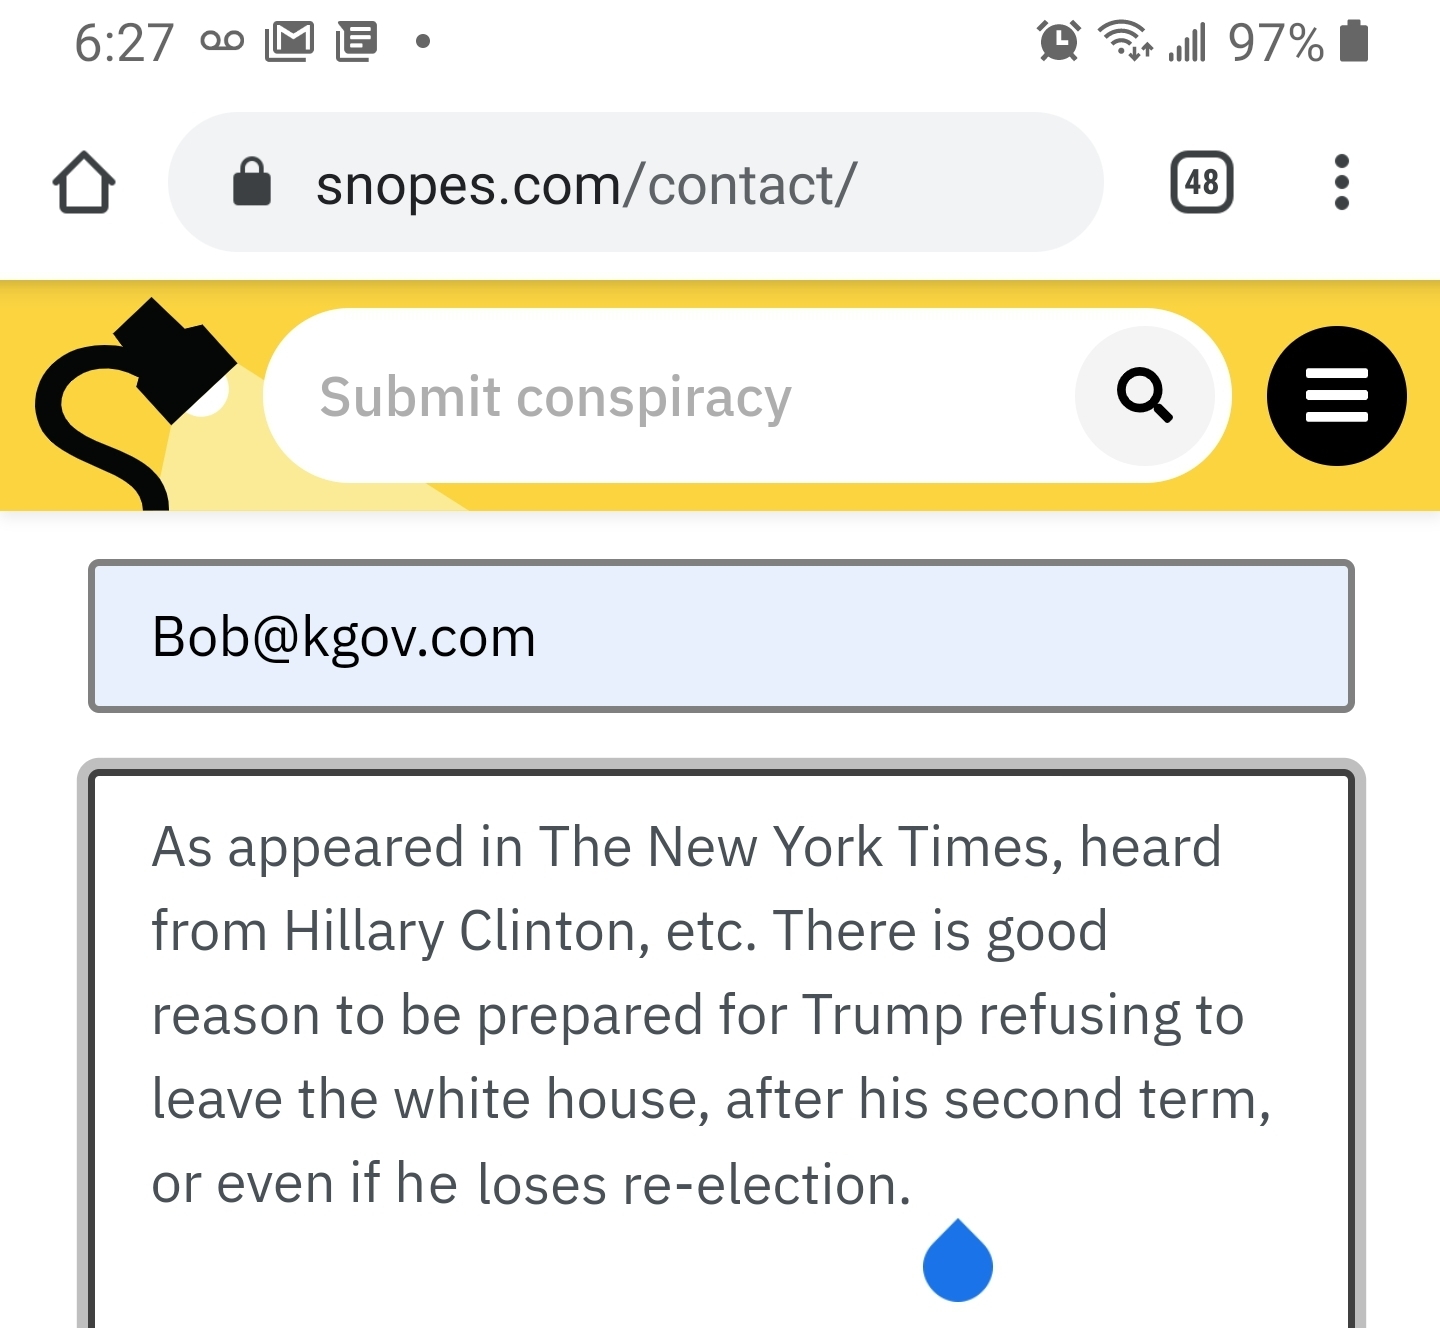 Hillary conspiracy: Trump won't leave White House (oh brother) Snopes screenshot of Enyart's suggestion they expose this conspiracy (fat chance :)